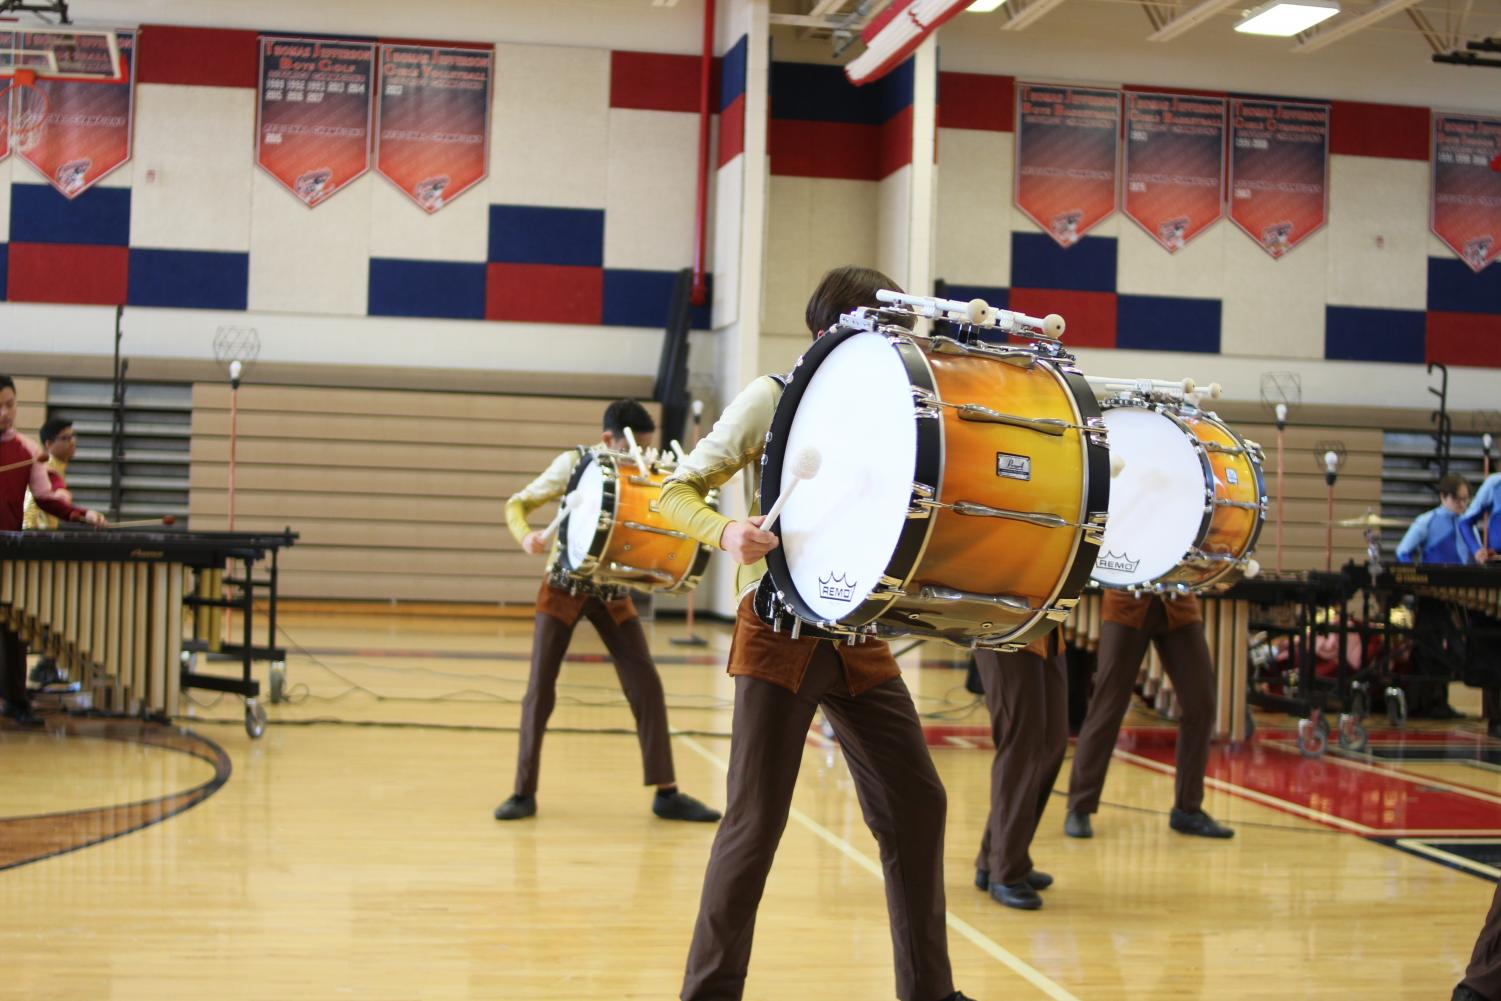 Leaning+into+his+drum%2C+freshman+Benjamin+Chang+plays+the+instrument%2C+complementing+the+other+percussionists+in+the+performance.+%E2%80%9CAt+the+start+of+the+season%2C+I+hadn%E2%80%99t+even+carried+a+bass+drum+before+so+it+was+hard+to+get+started+with+drumline.+But%2C+as+they+say%2C+practice+makes+perfect%2C%E2%80%9D+Chang+said.+%E2%80%9CI+just+kept+trying+to+stay+upright+with+the+drum+throughout+each+rehearsal+and+eventually+carrying+it+became+easy.%E2%80%9D%0A